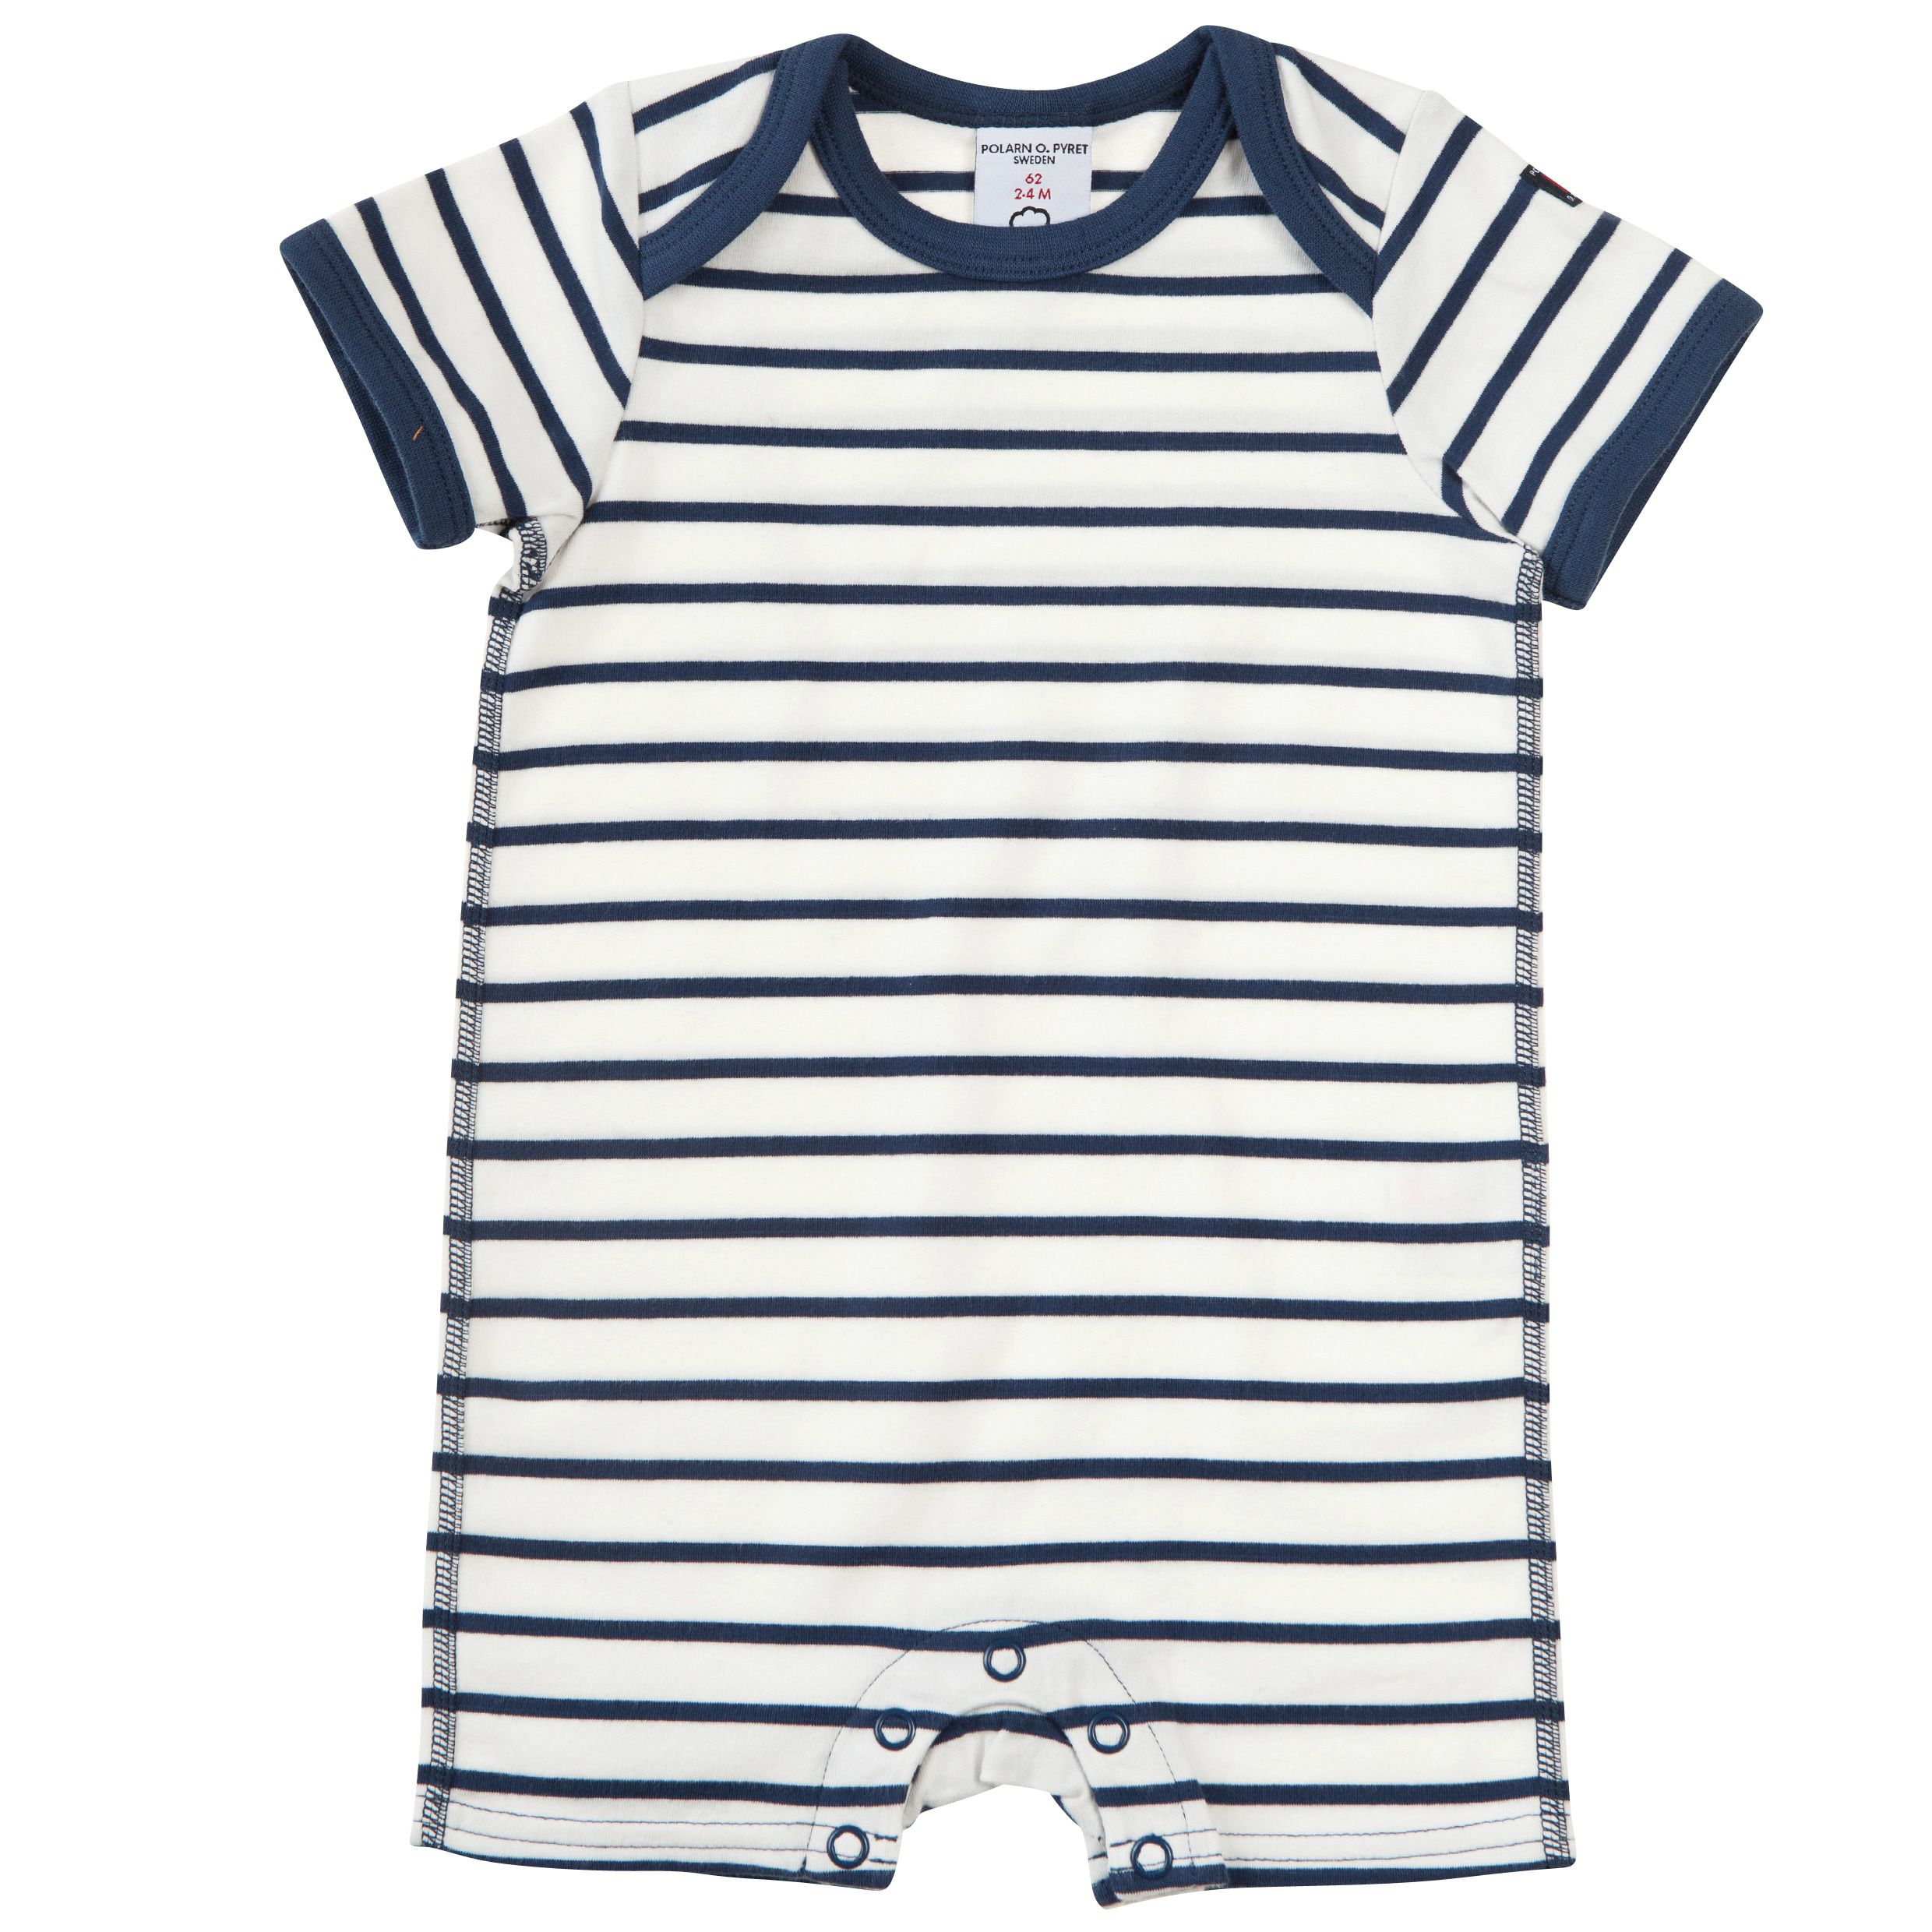 Babys stripe short all in one